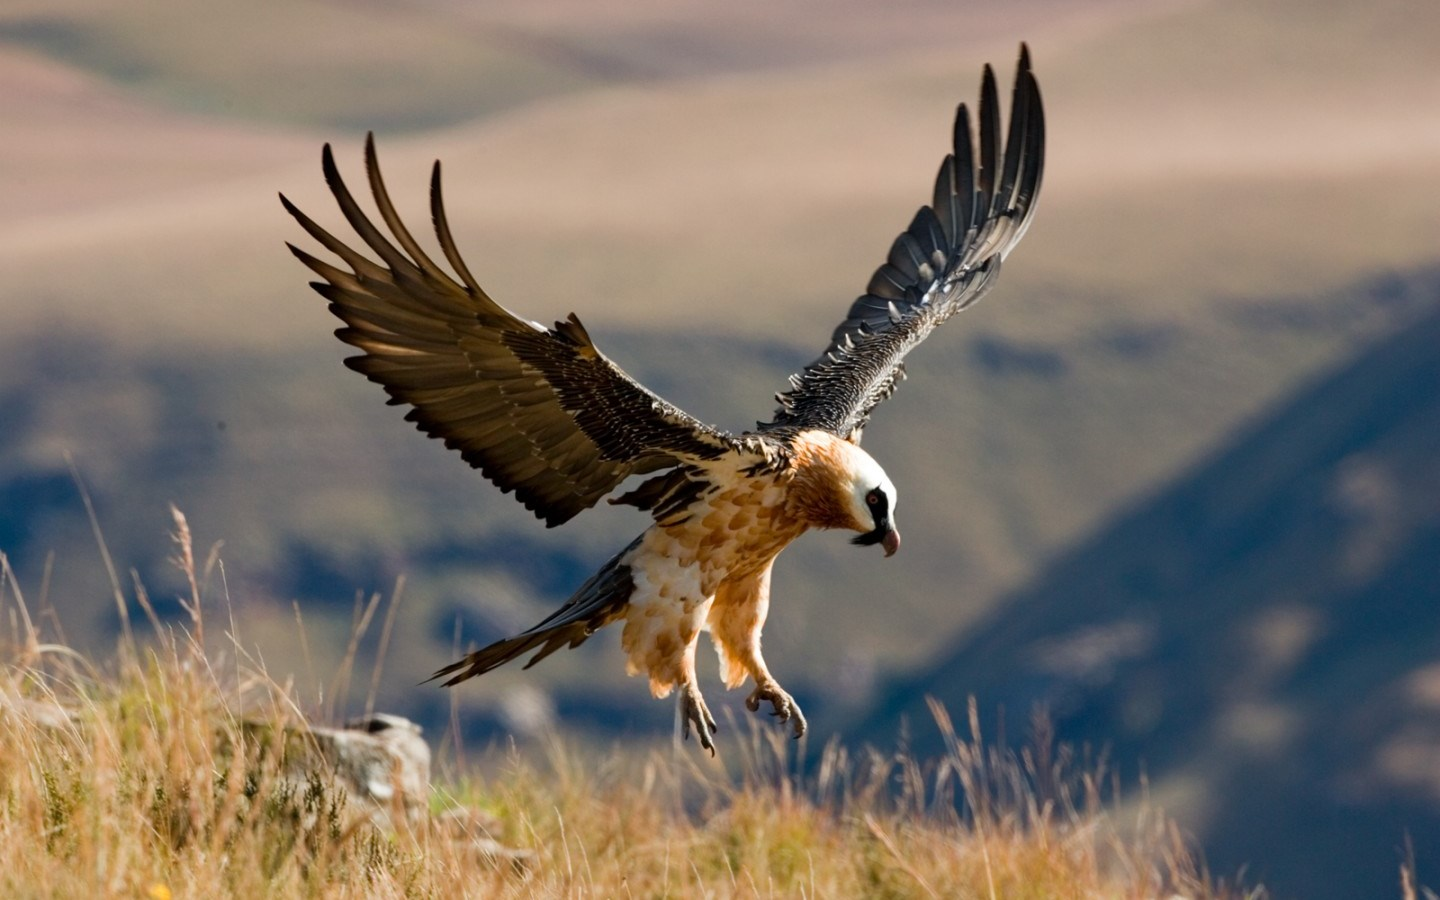 Black Aesthetic Wallpaper Bearded Vulture Project Vulture